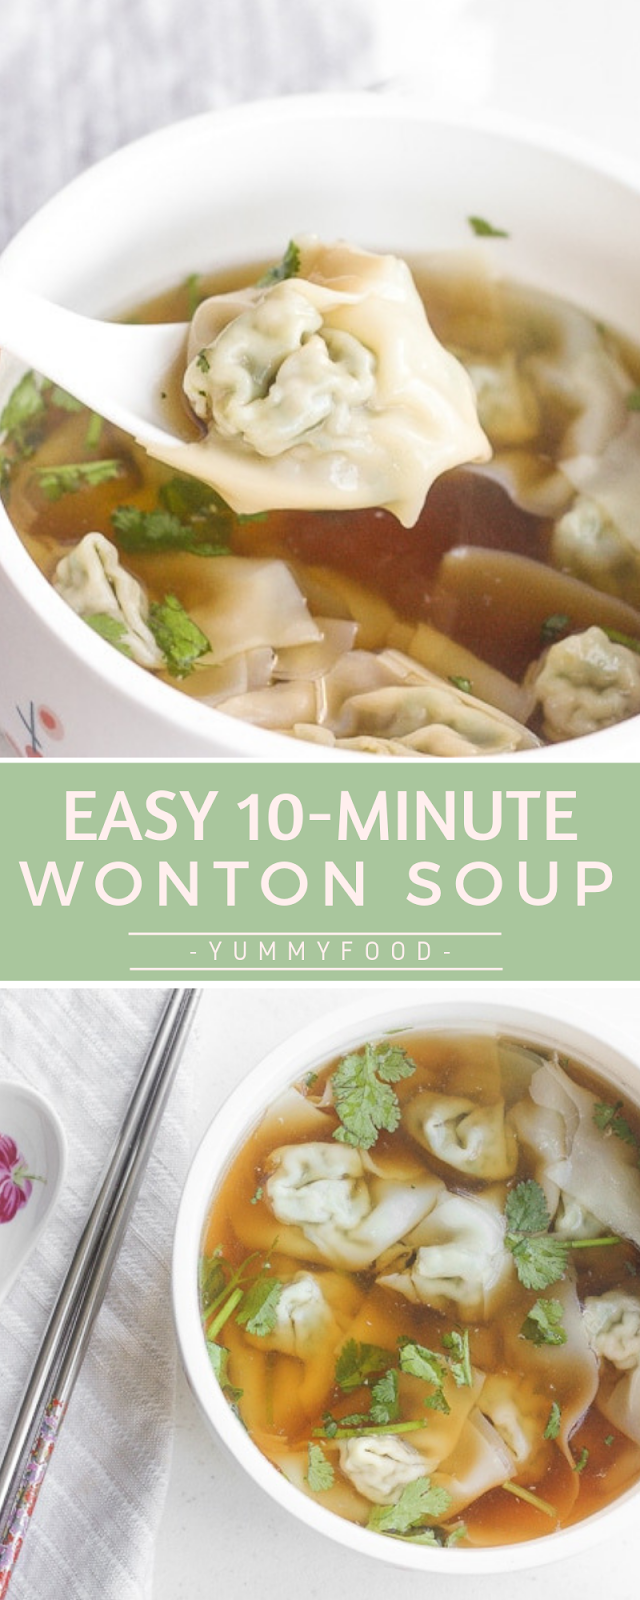 EASY 10-MINUTE WONTON SOUP